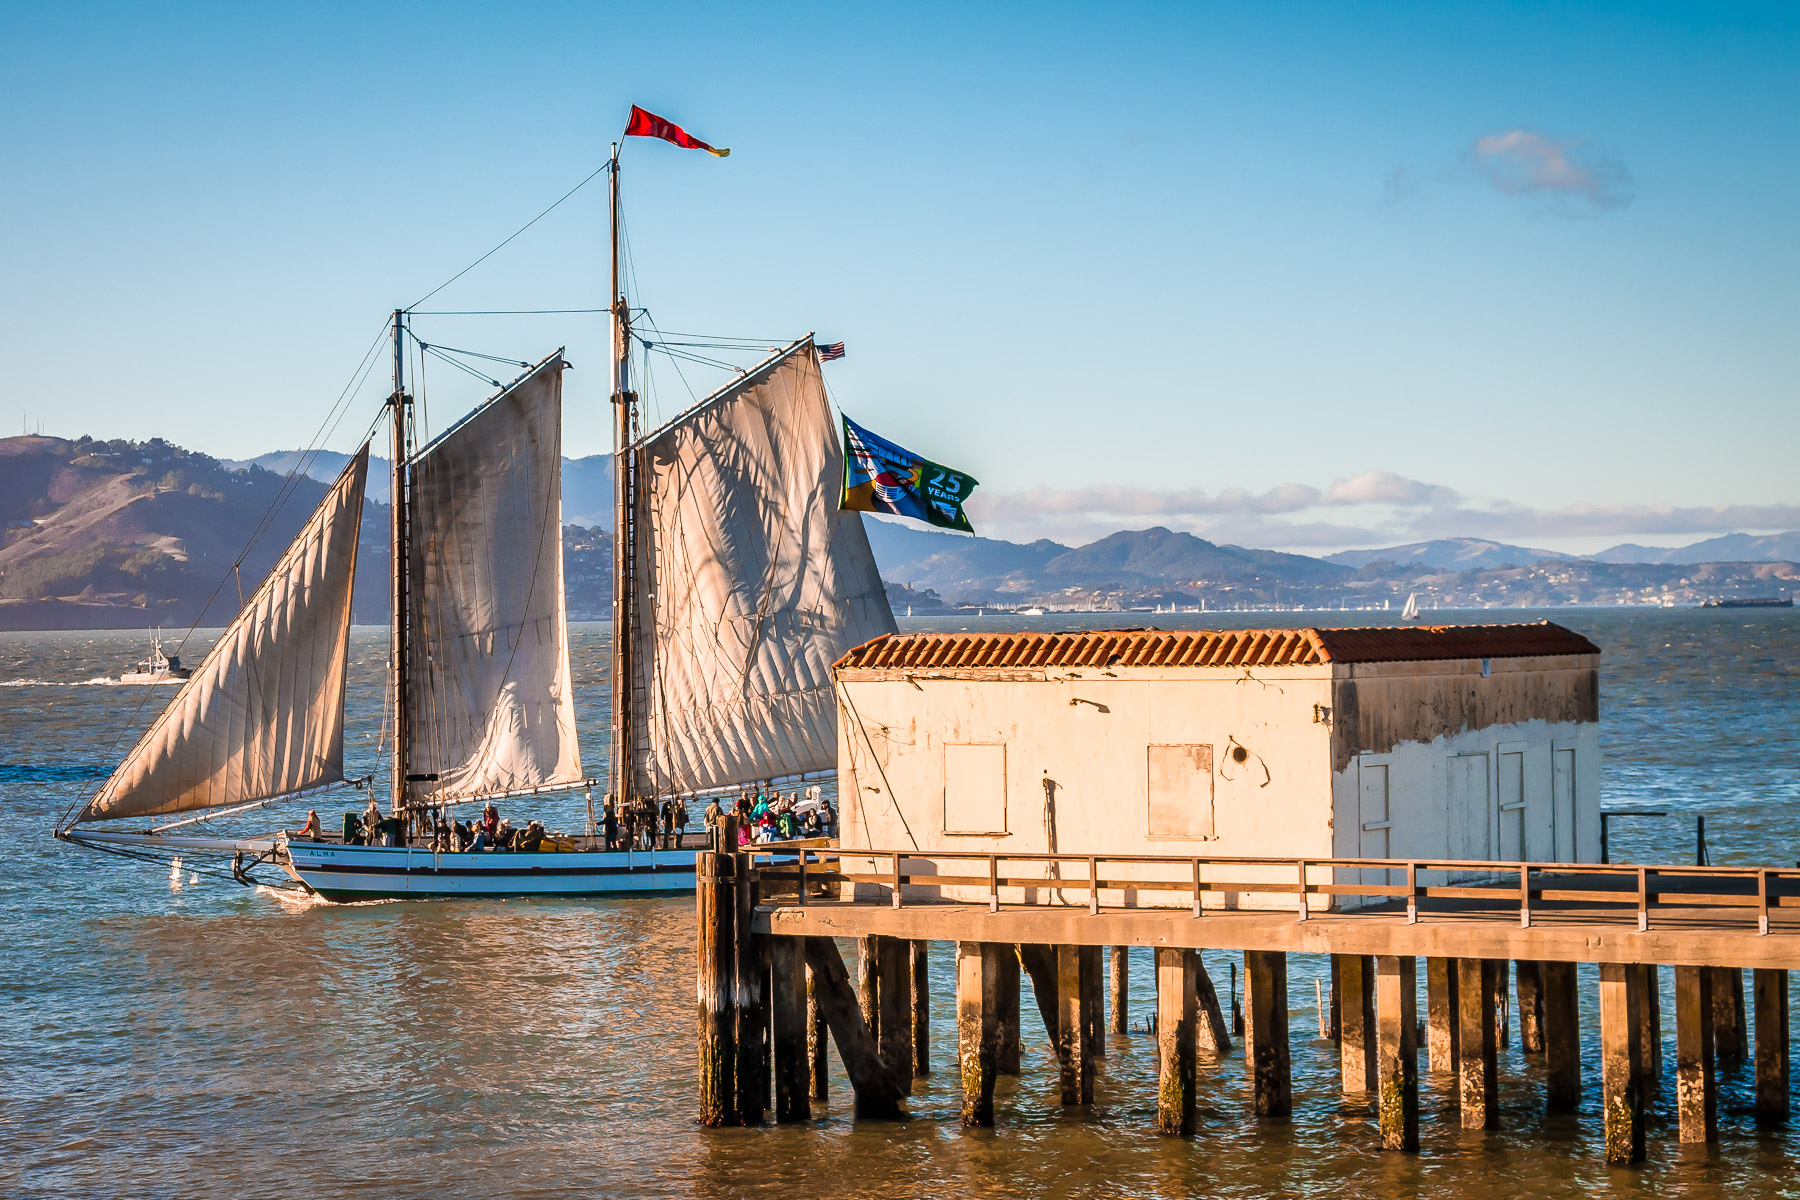 The 1891 scow schoonerAlma, in the collection of theSan FranciscoMaritime National Historical Park, sails past a pier in San Francisco Bay.